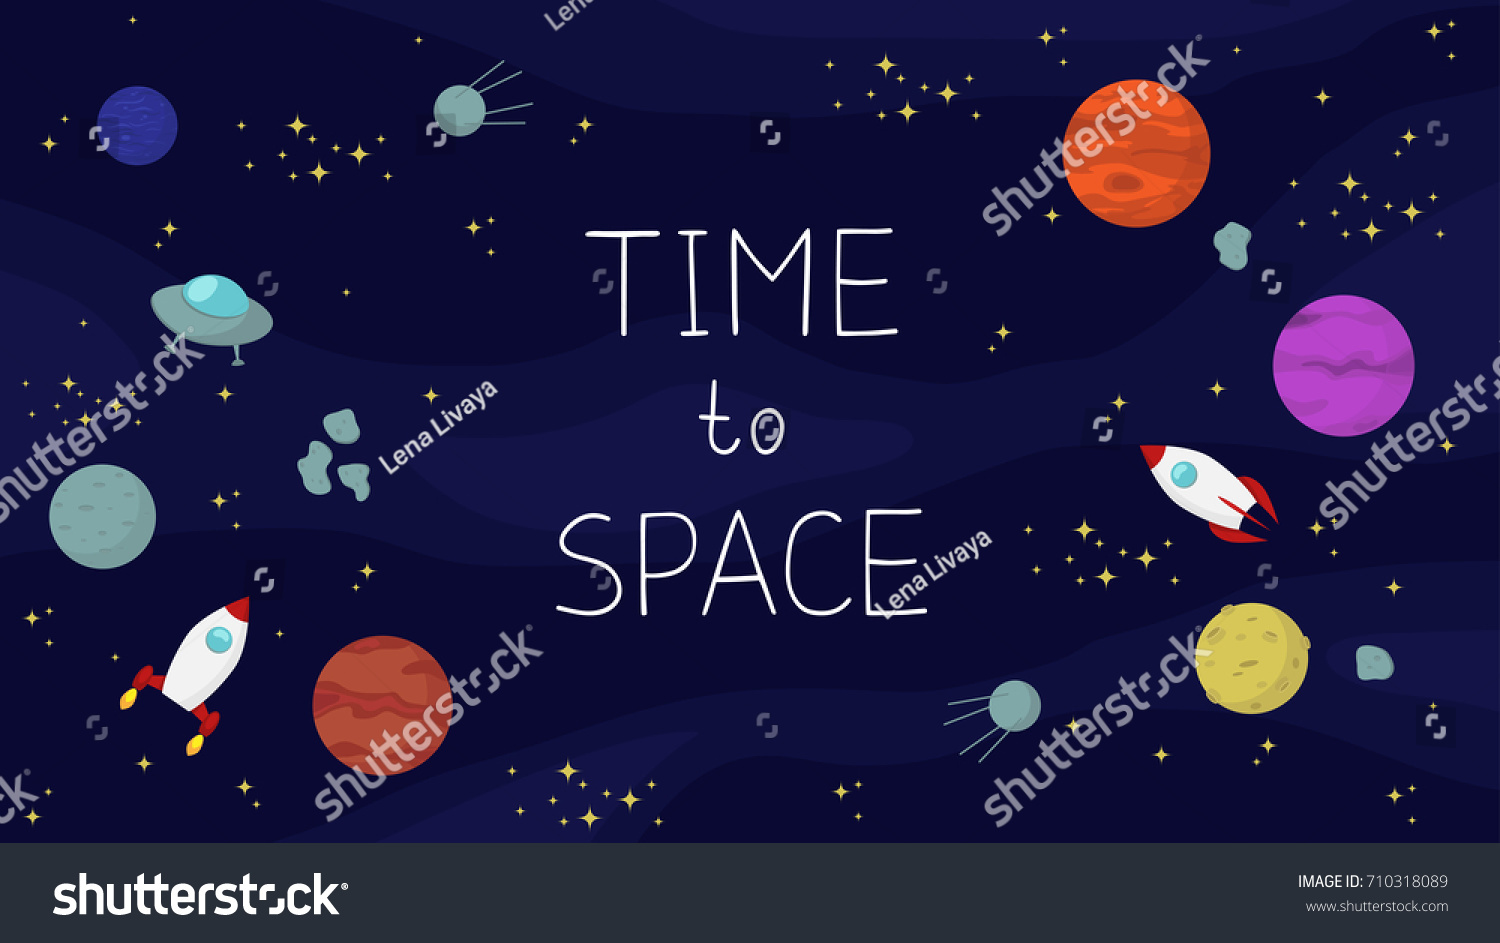 Space Background Planets Stars Spaceships Inscription 710318089